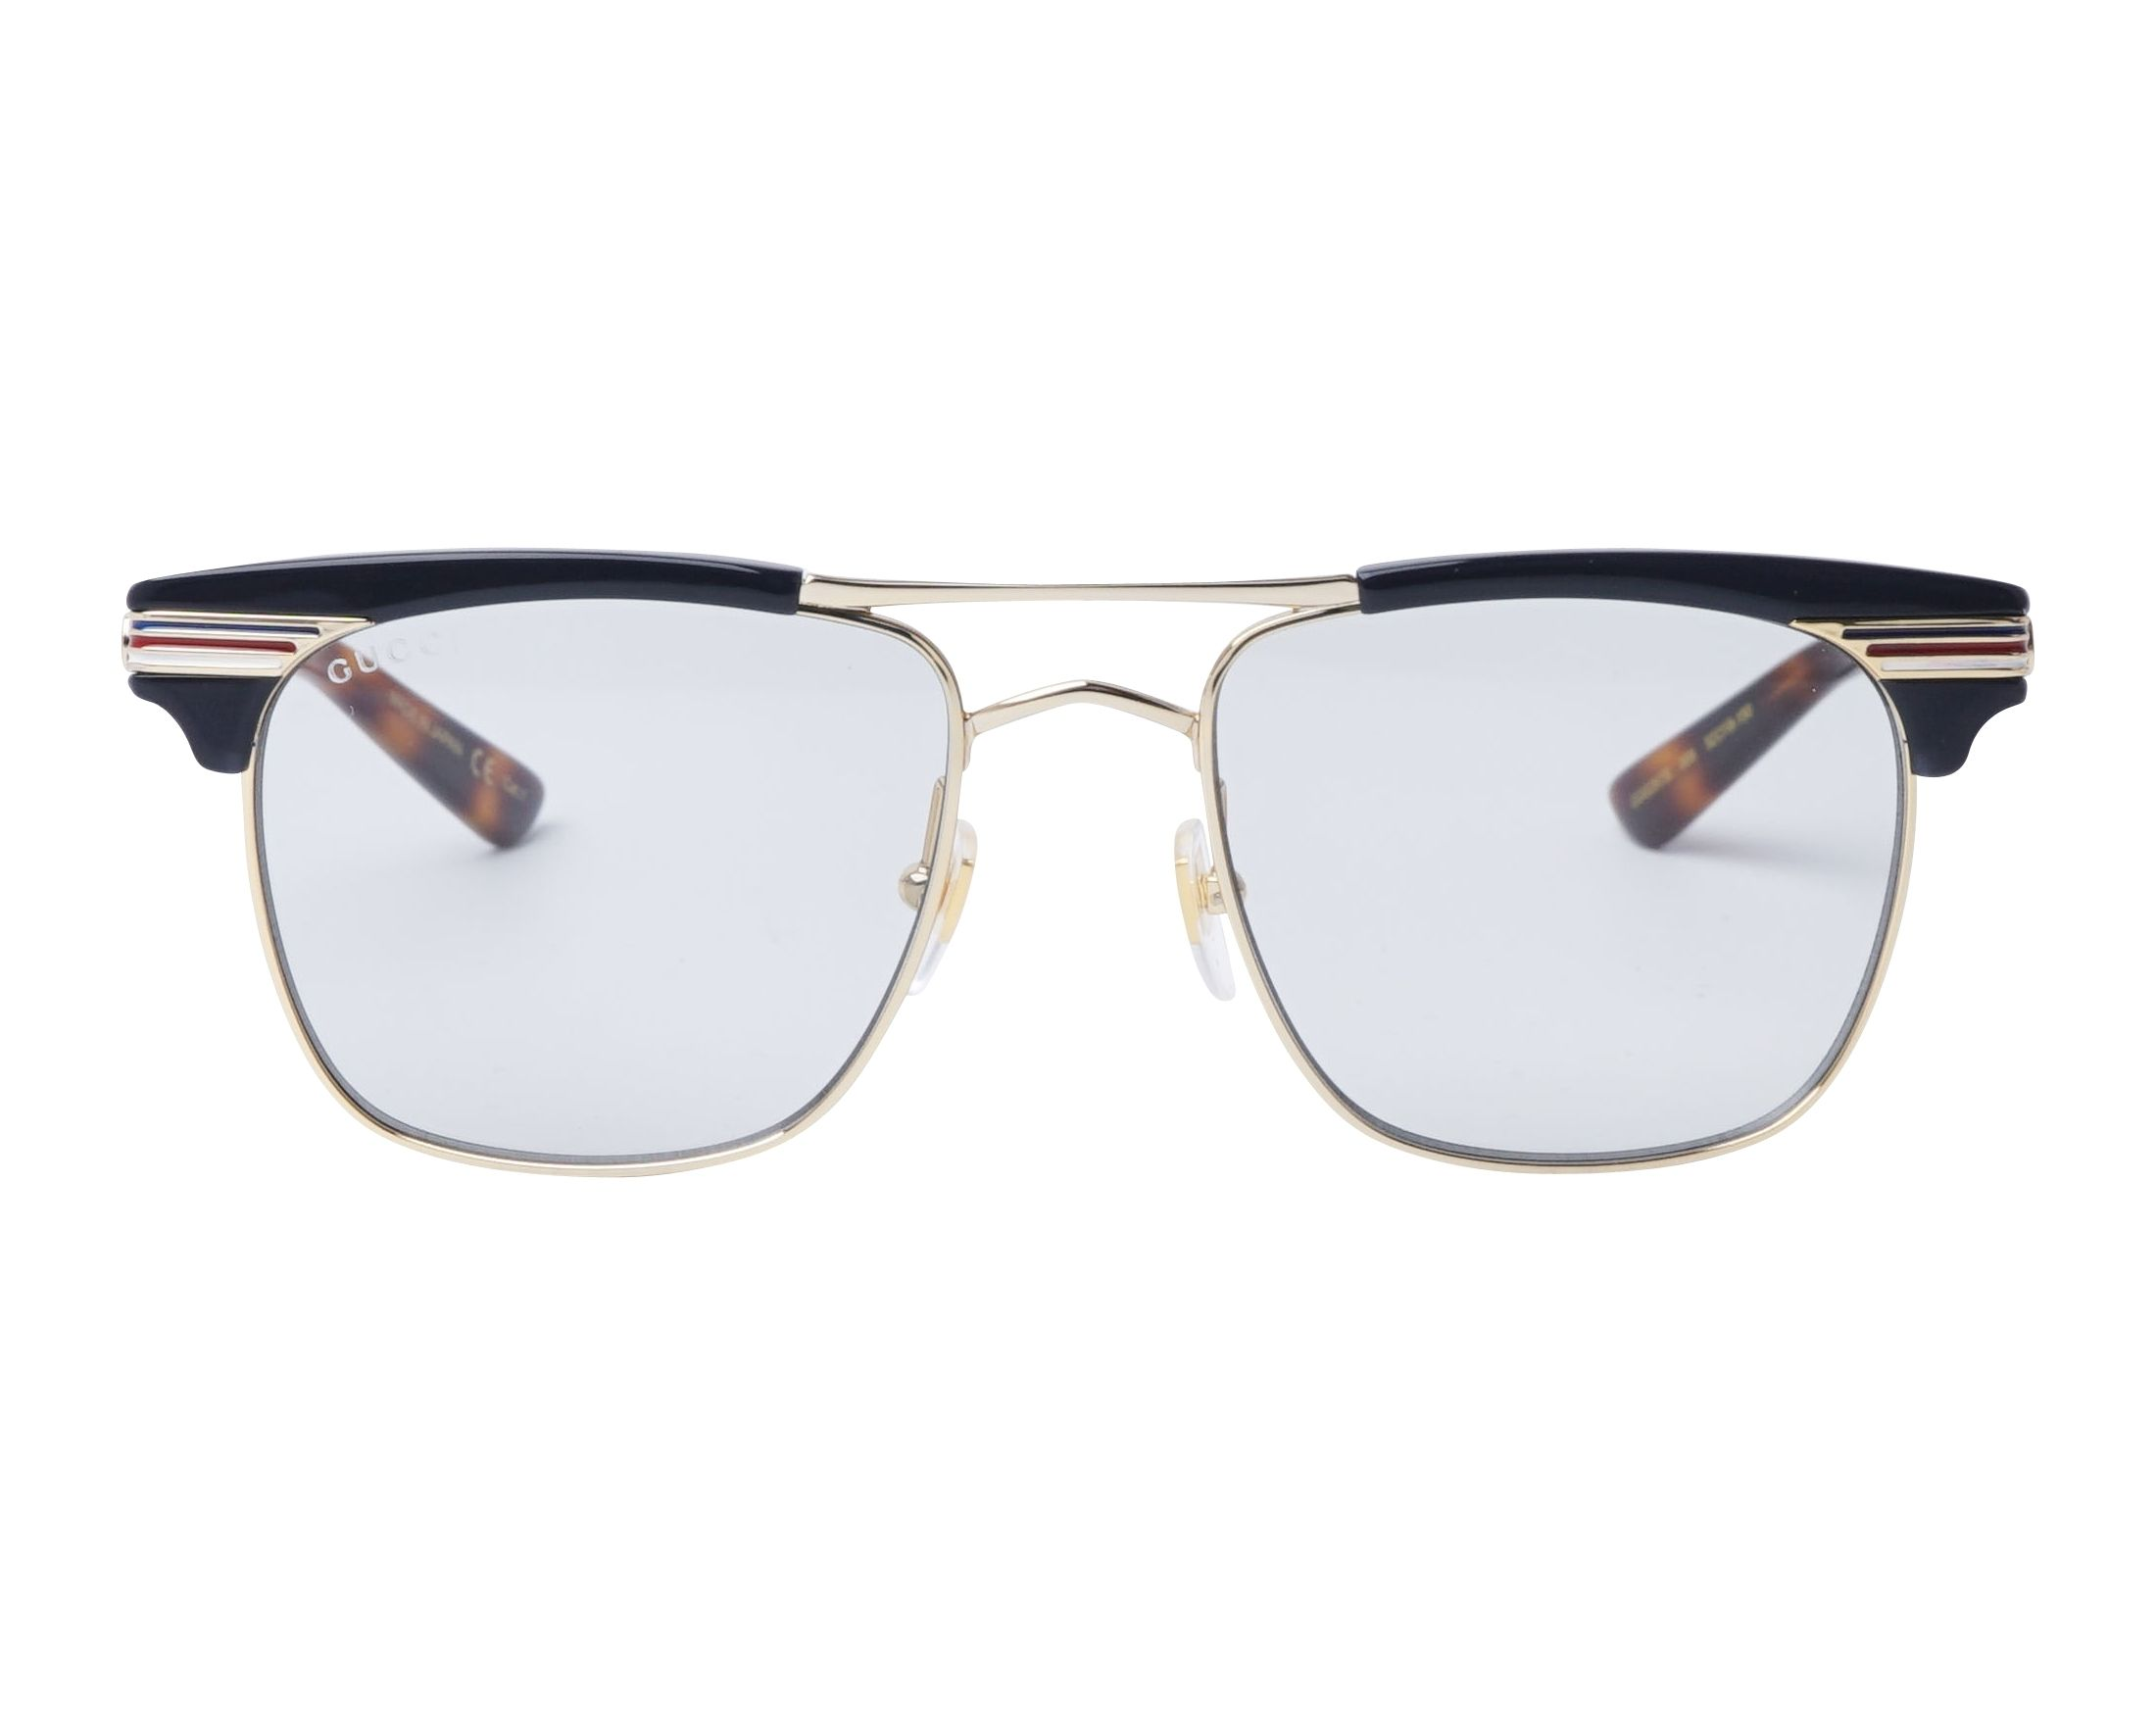 e78bcd323fe eyeglasses Gucci GG-0287-S 006 52-18 Gold Blue front view